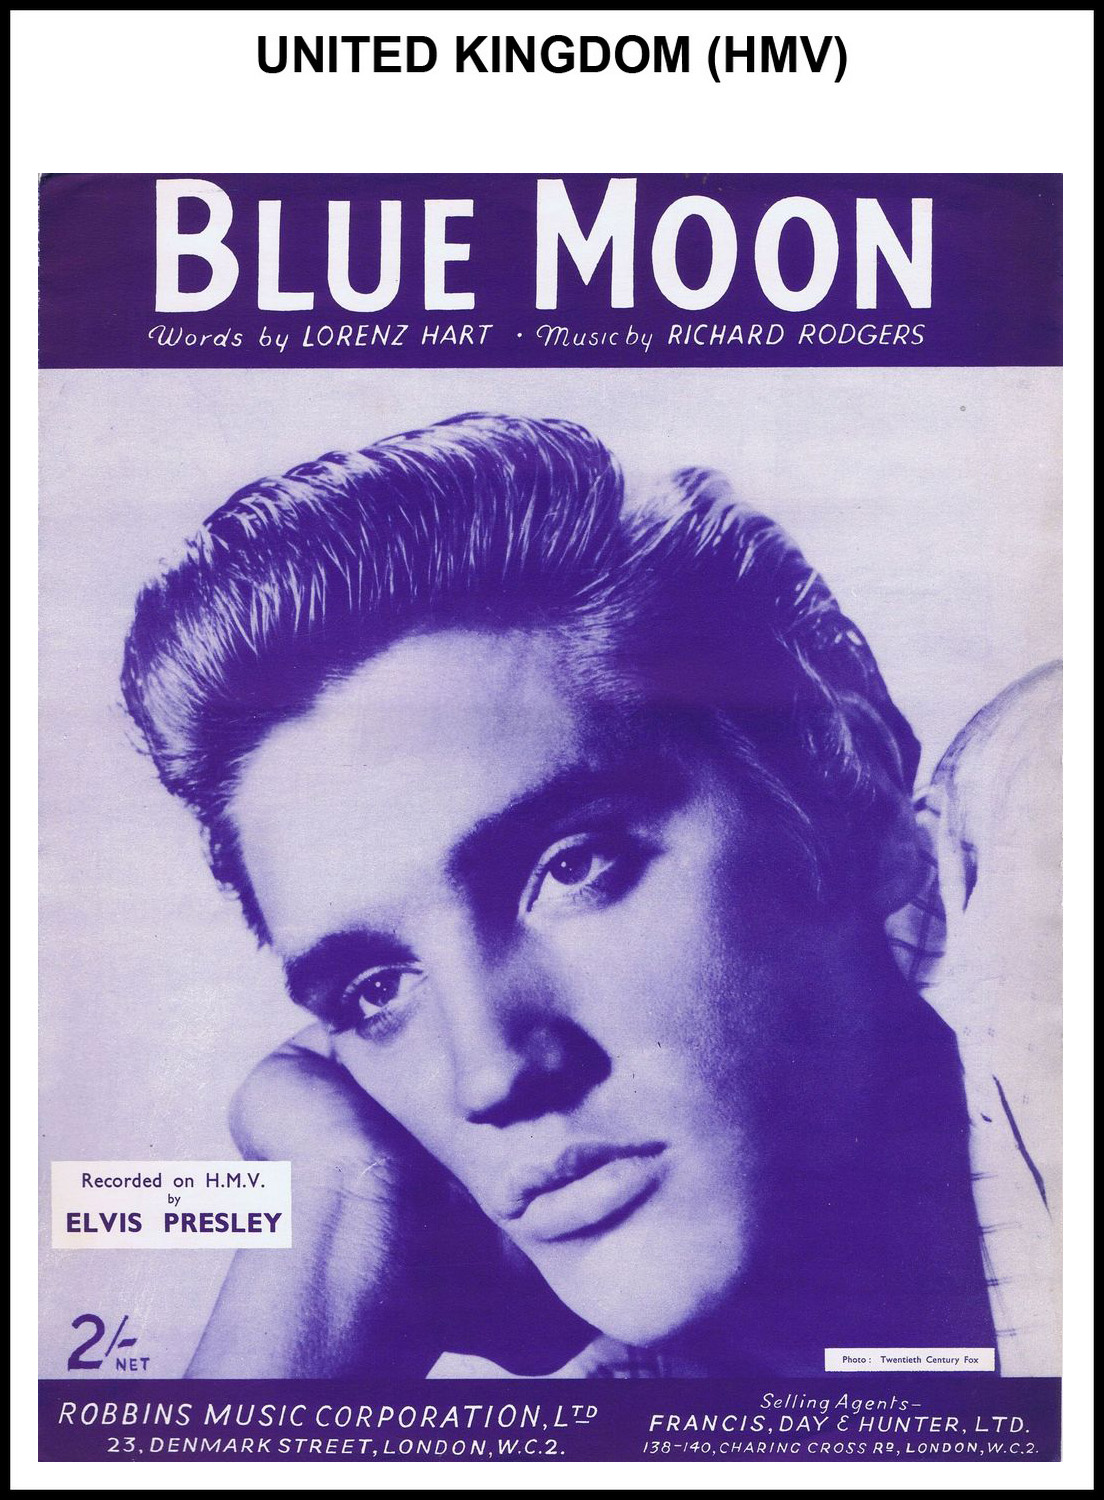 1956 - Blue Moon (UK, HMV) (CHRIS GILES COLLECTION)